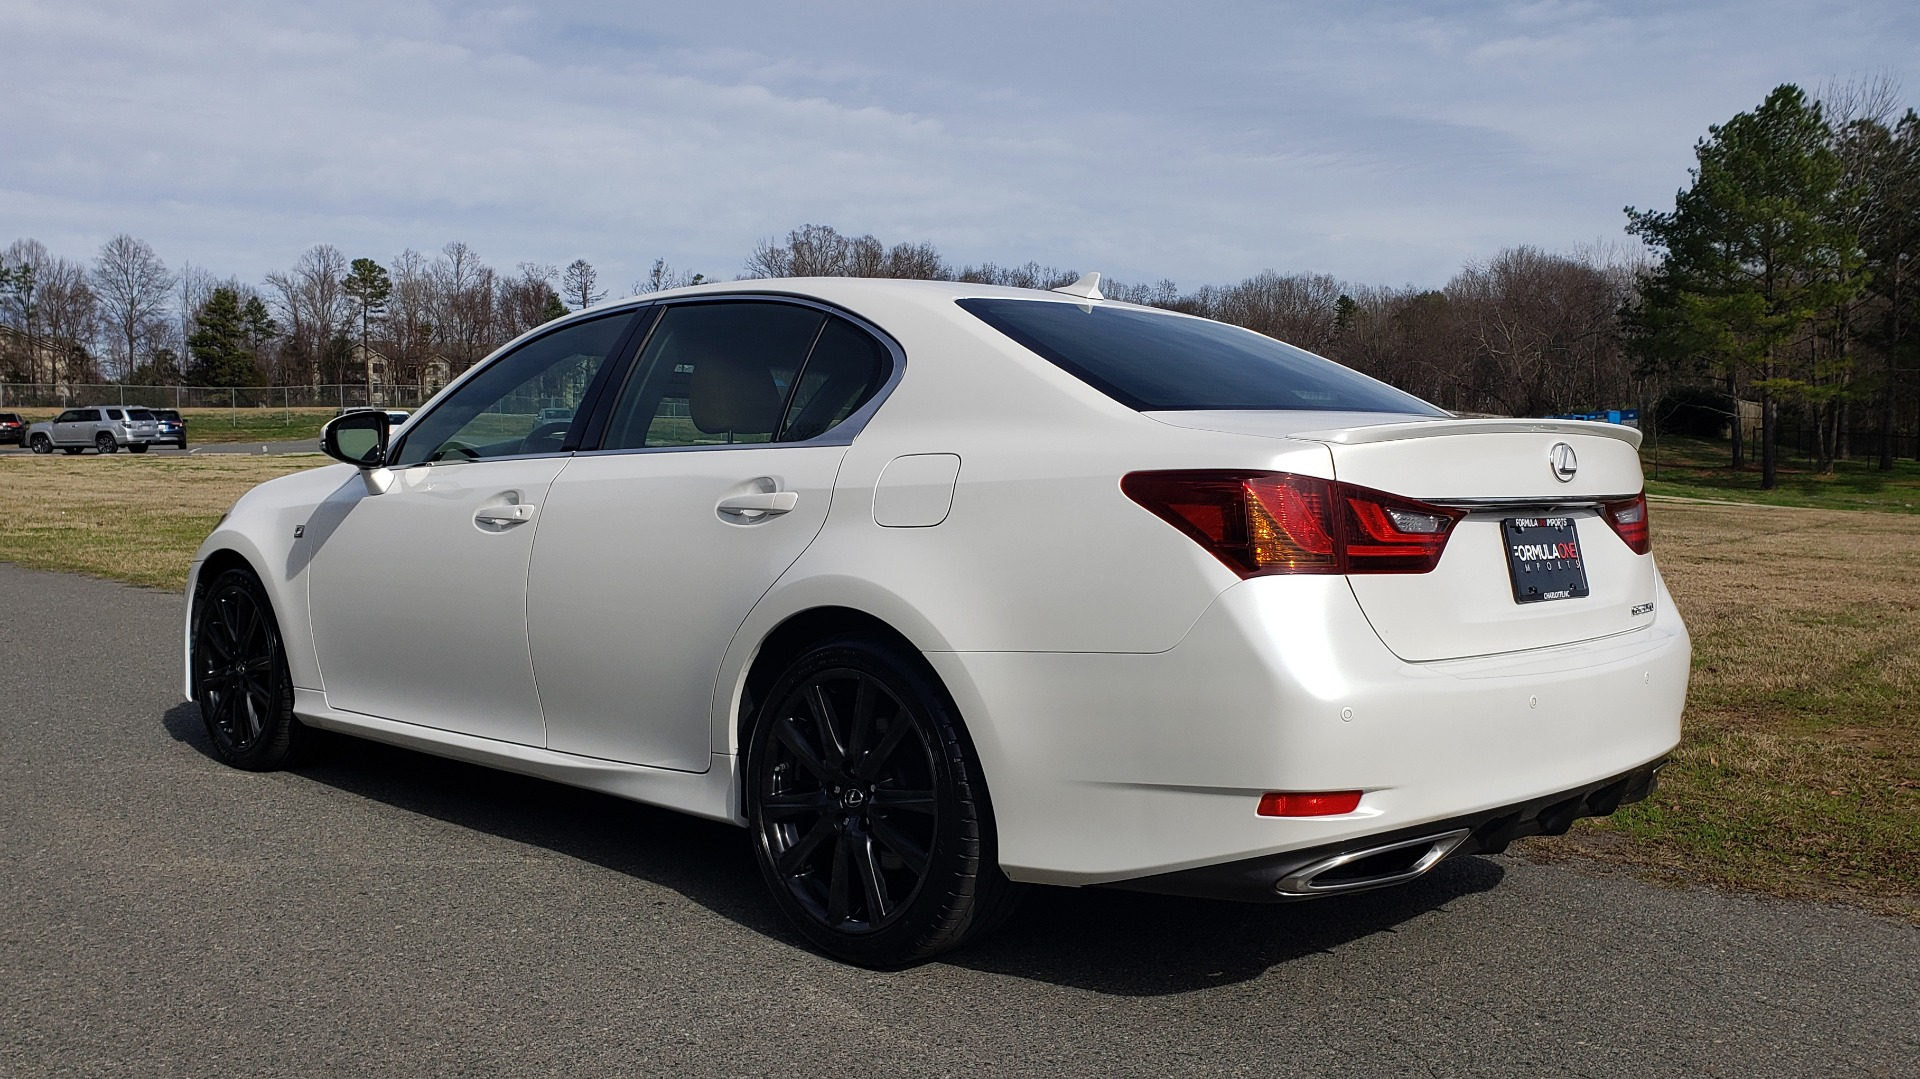 Used 2013 Lexus GS 350 F-SPORT / NAV / SUNROOF / BSM / PRK ASST / REARVIEW for sale Sold at Formula Imports in Charlotte NC 28227 3